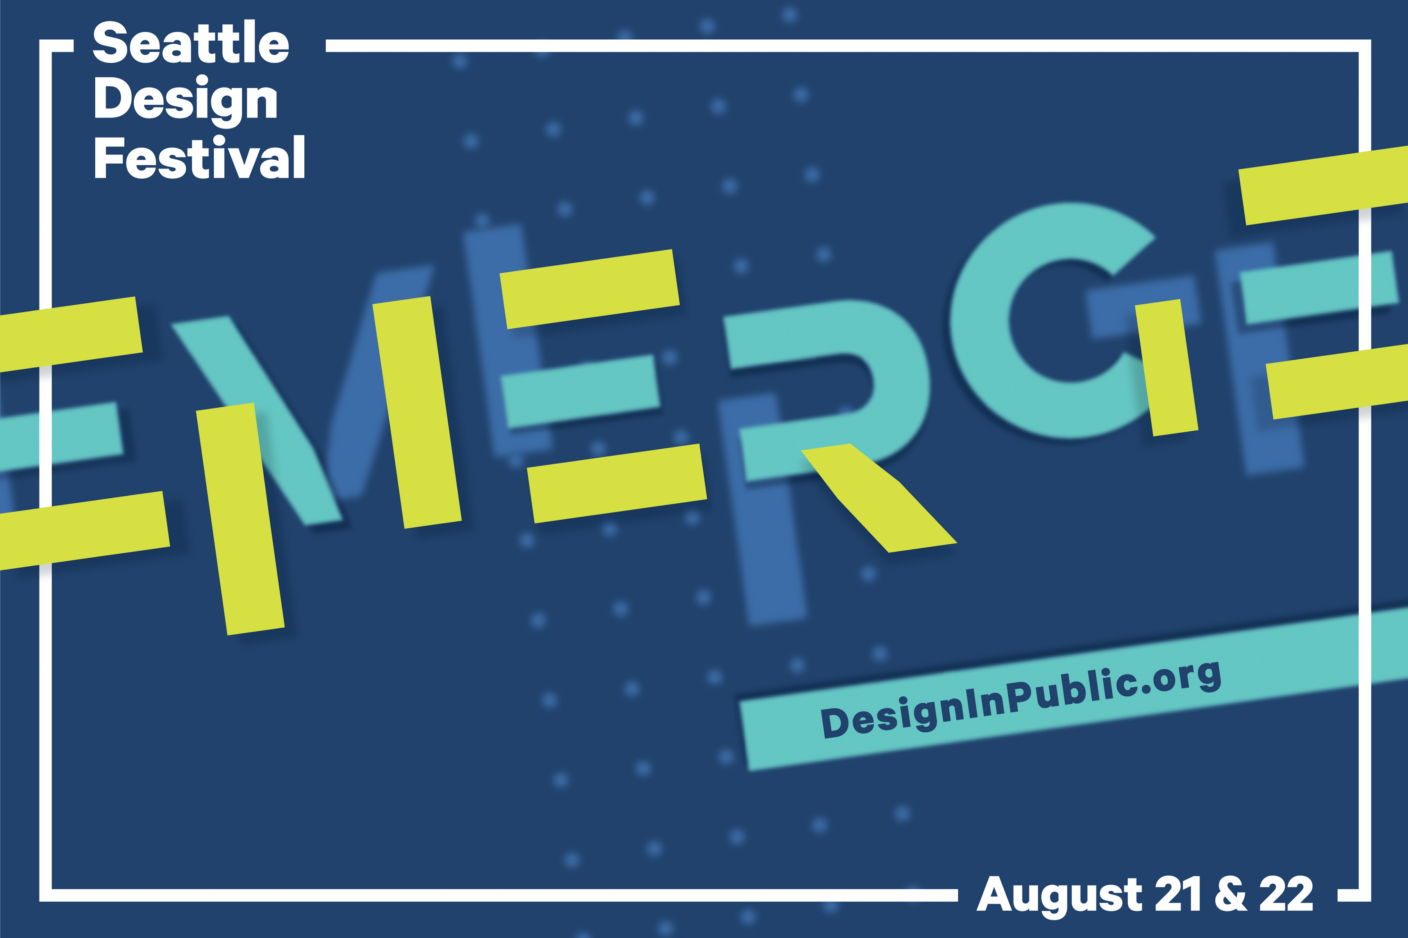 The 2021 Seattle Design Festival is Emerging!